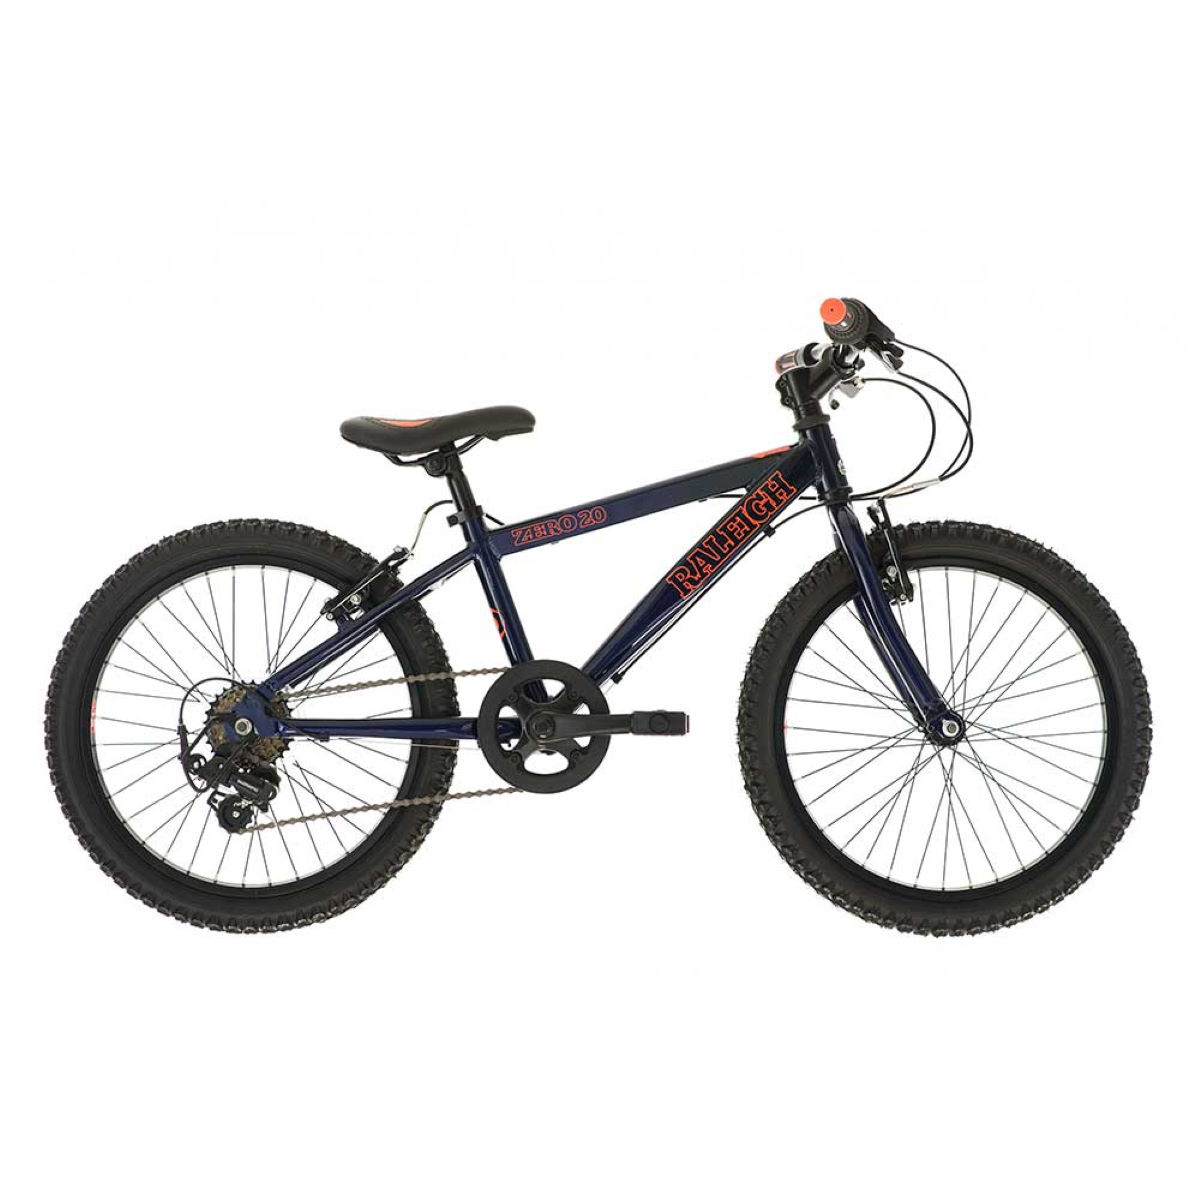 Raleigh Zero 20 (2017) Kids Bike   Kids Bikes  Over 7